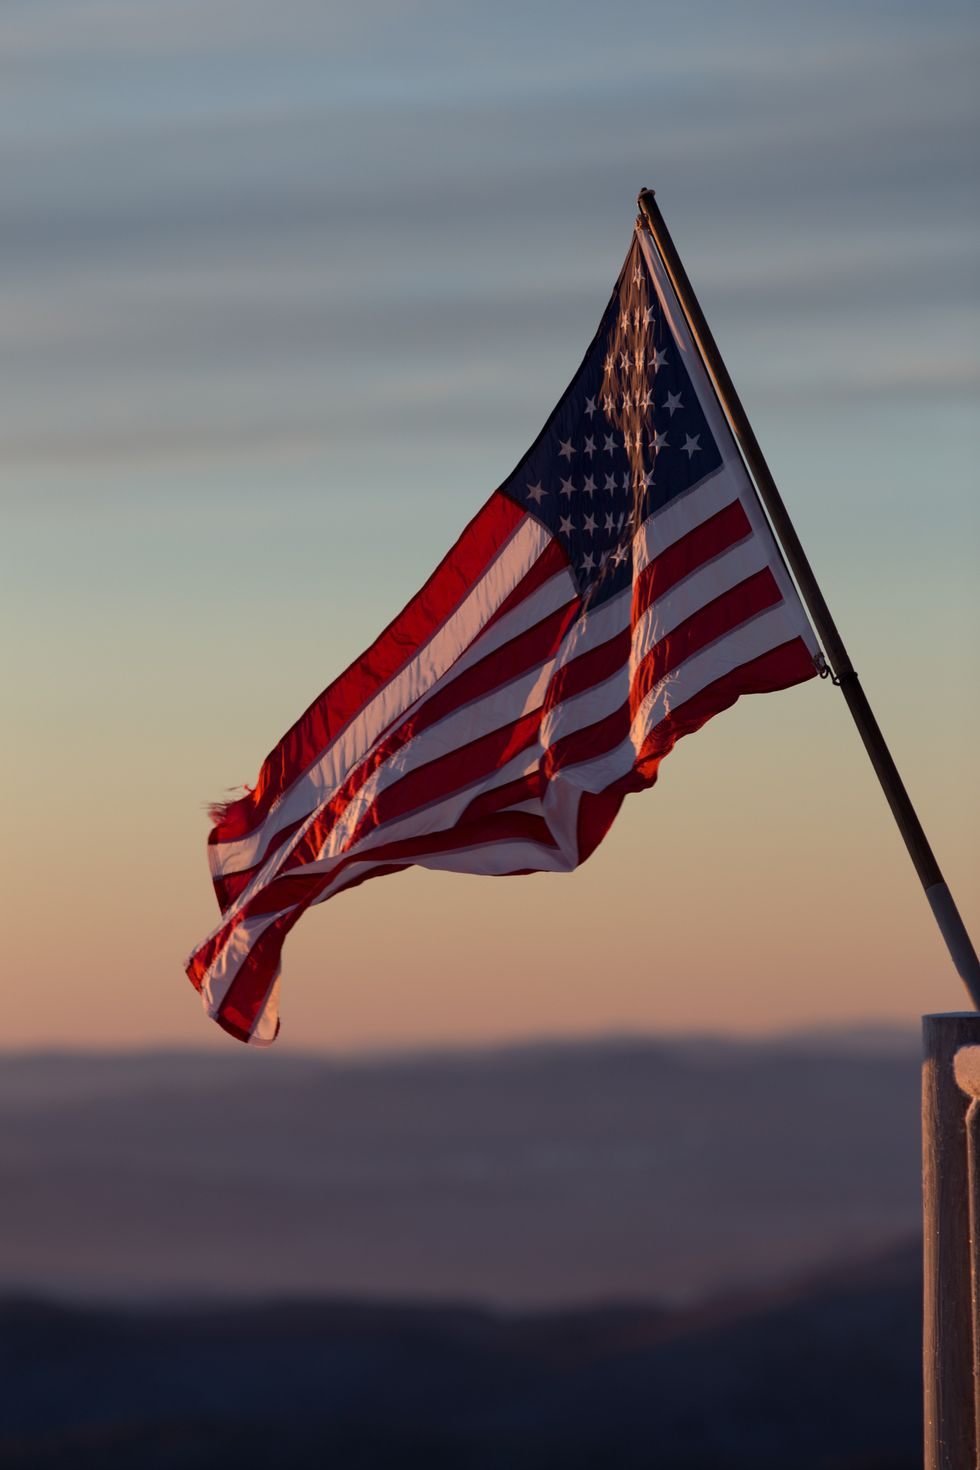 No Matter What Your Political Affiliation, the American Flag Should Not Be Disrespected